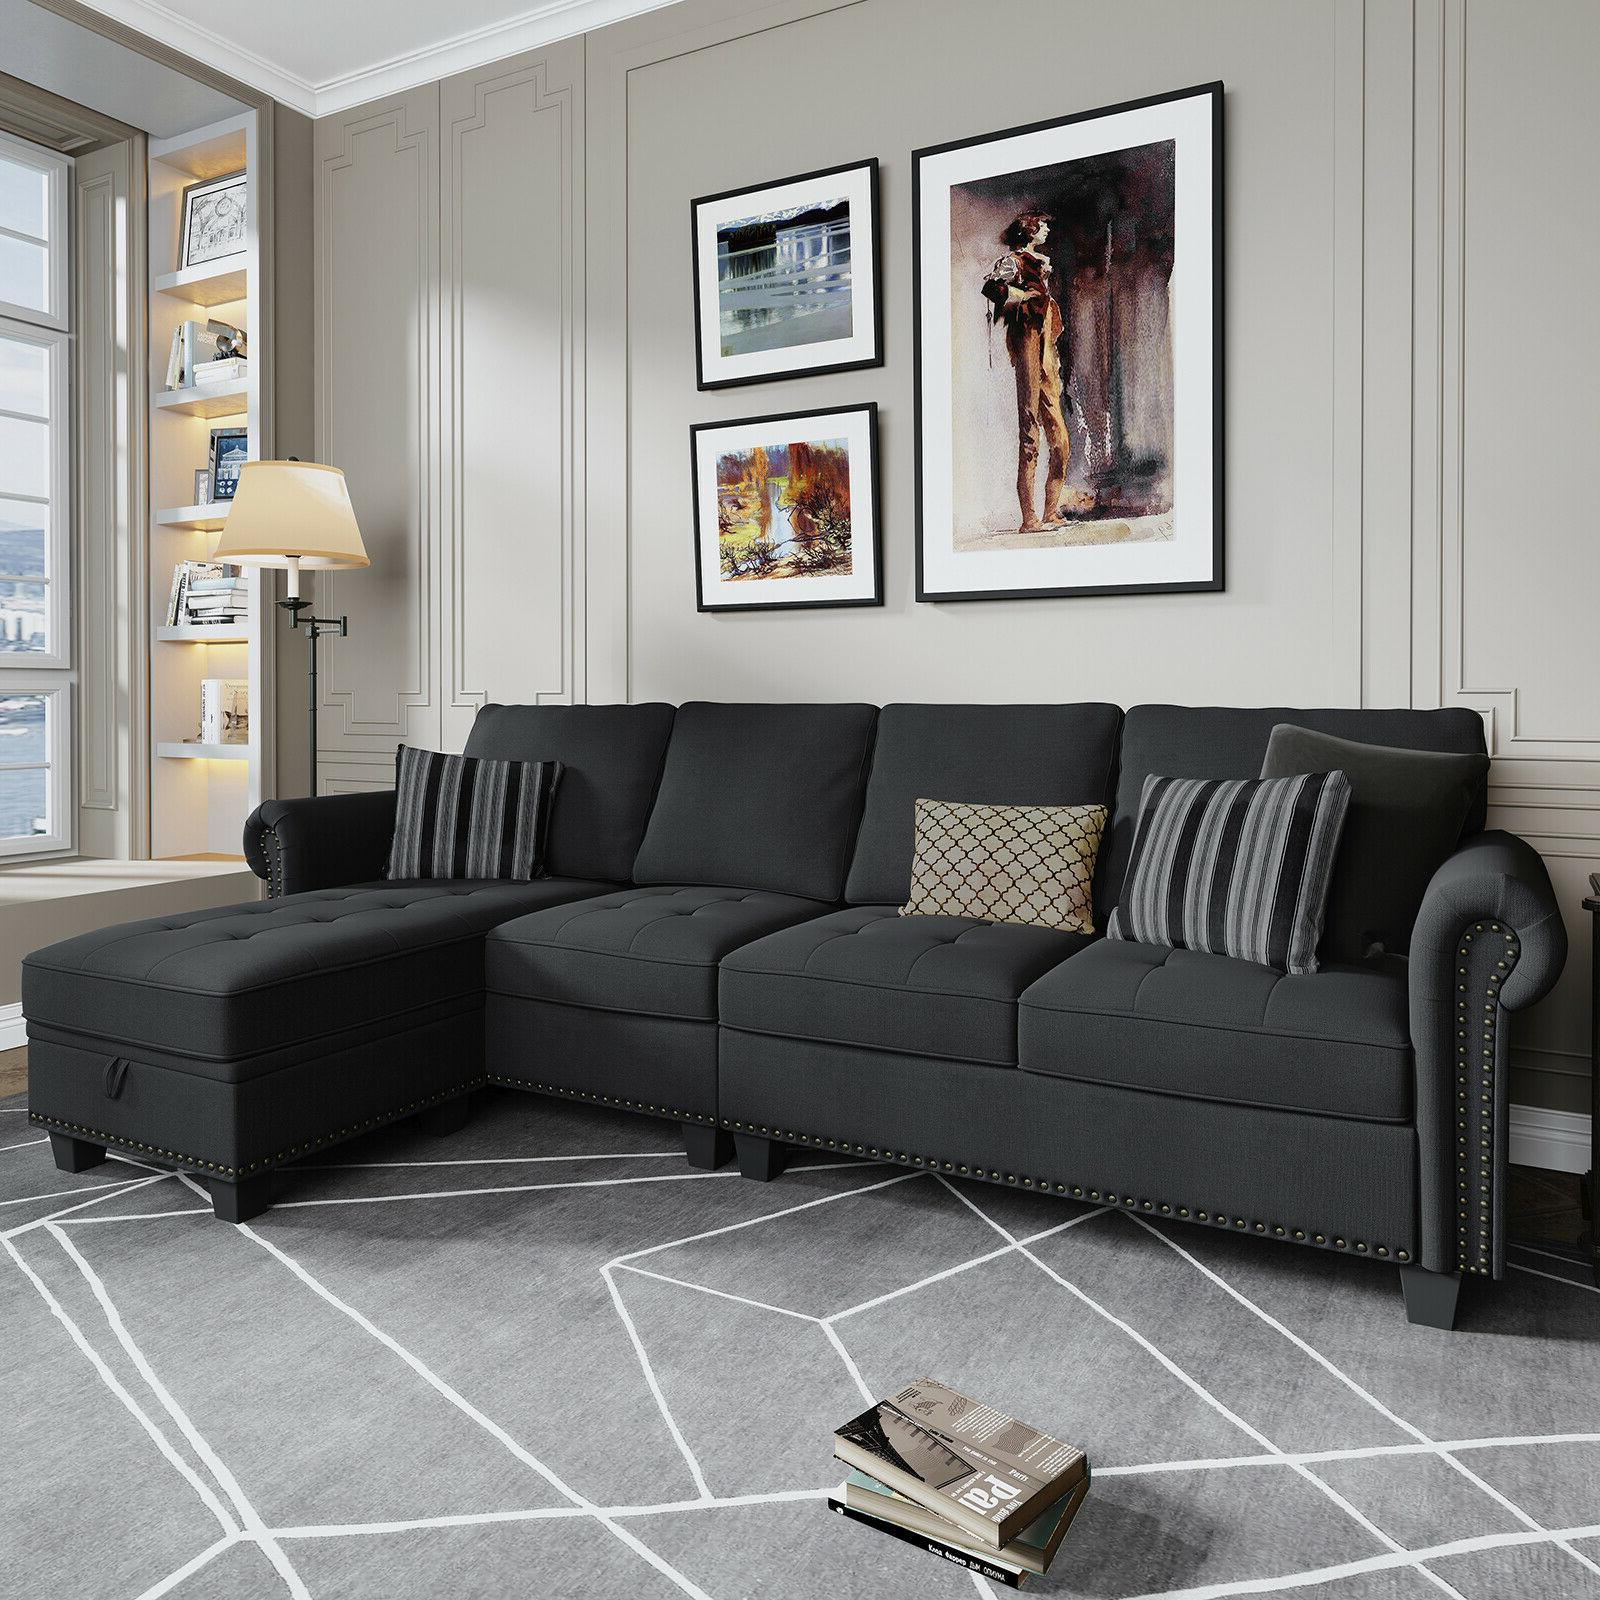 Sectional Sofa Convertible Couch L 4-seat Dark